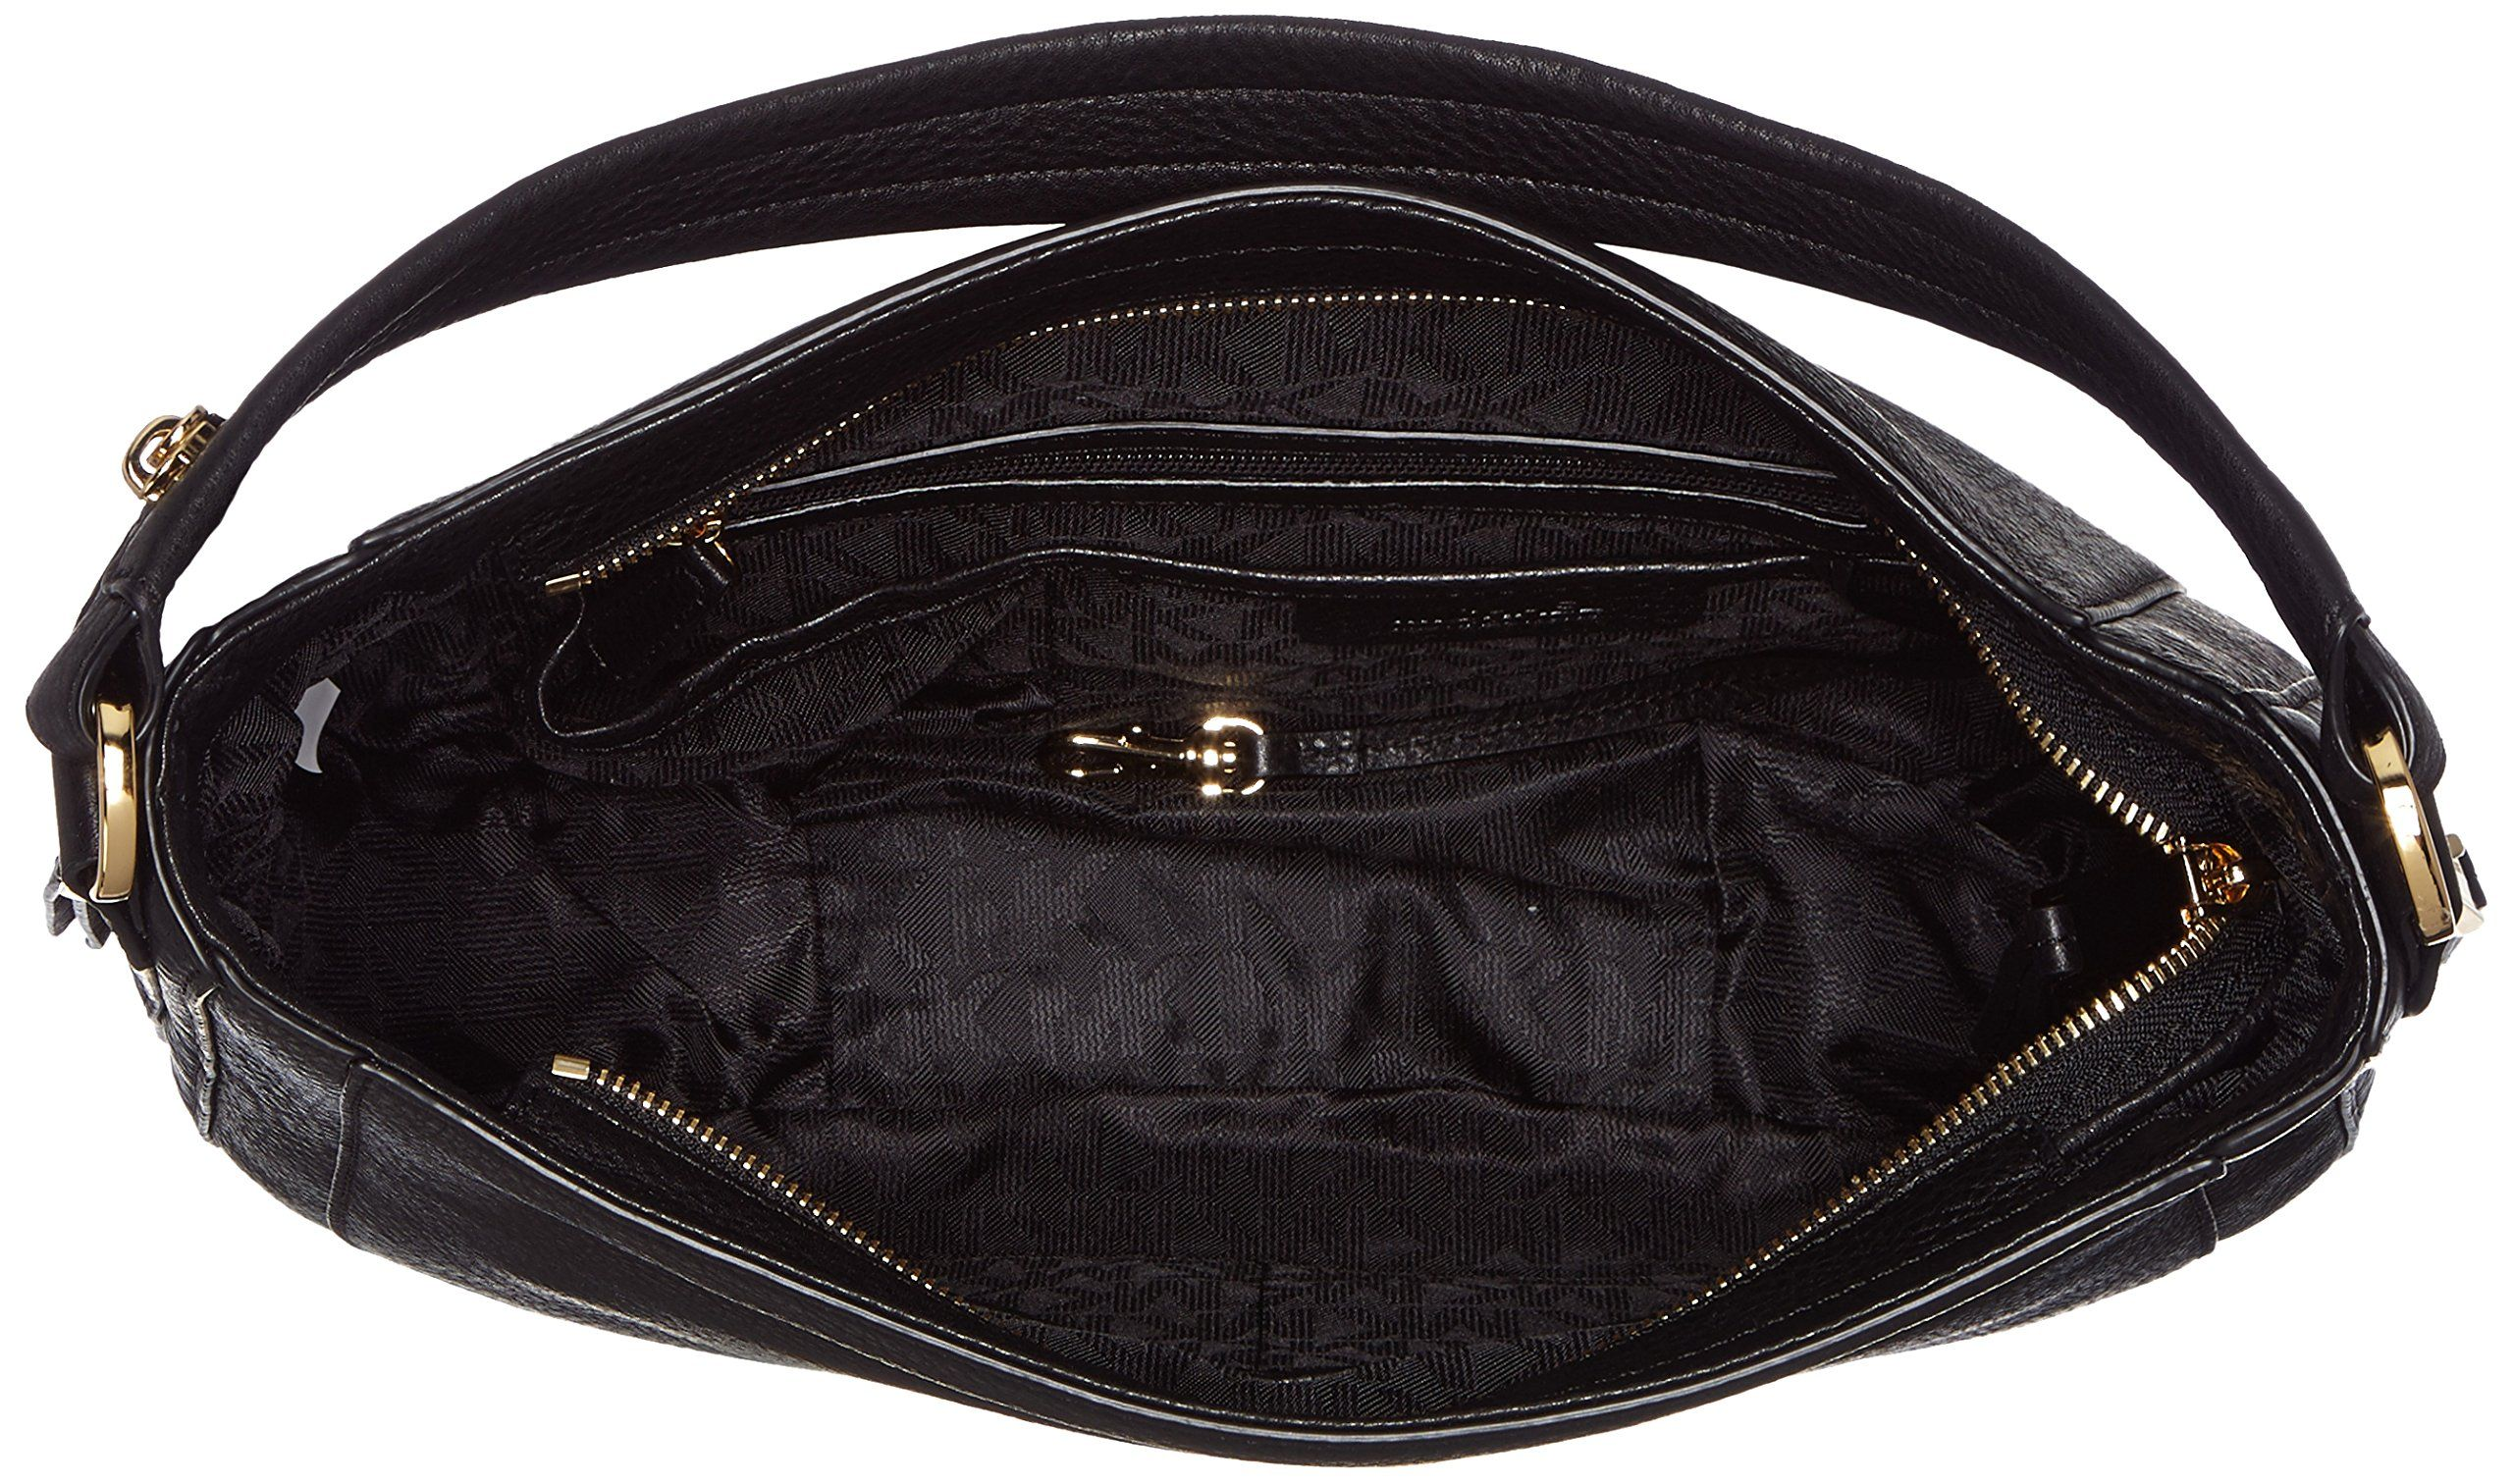 MICHAEL Michael Kors Julia Medium Convertible Shoulder Bag Black   See this  great product. ( 41b446bab1